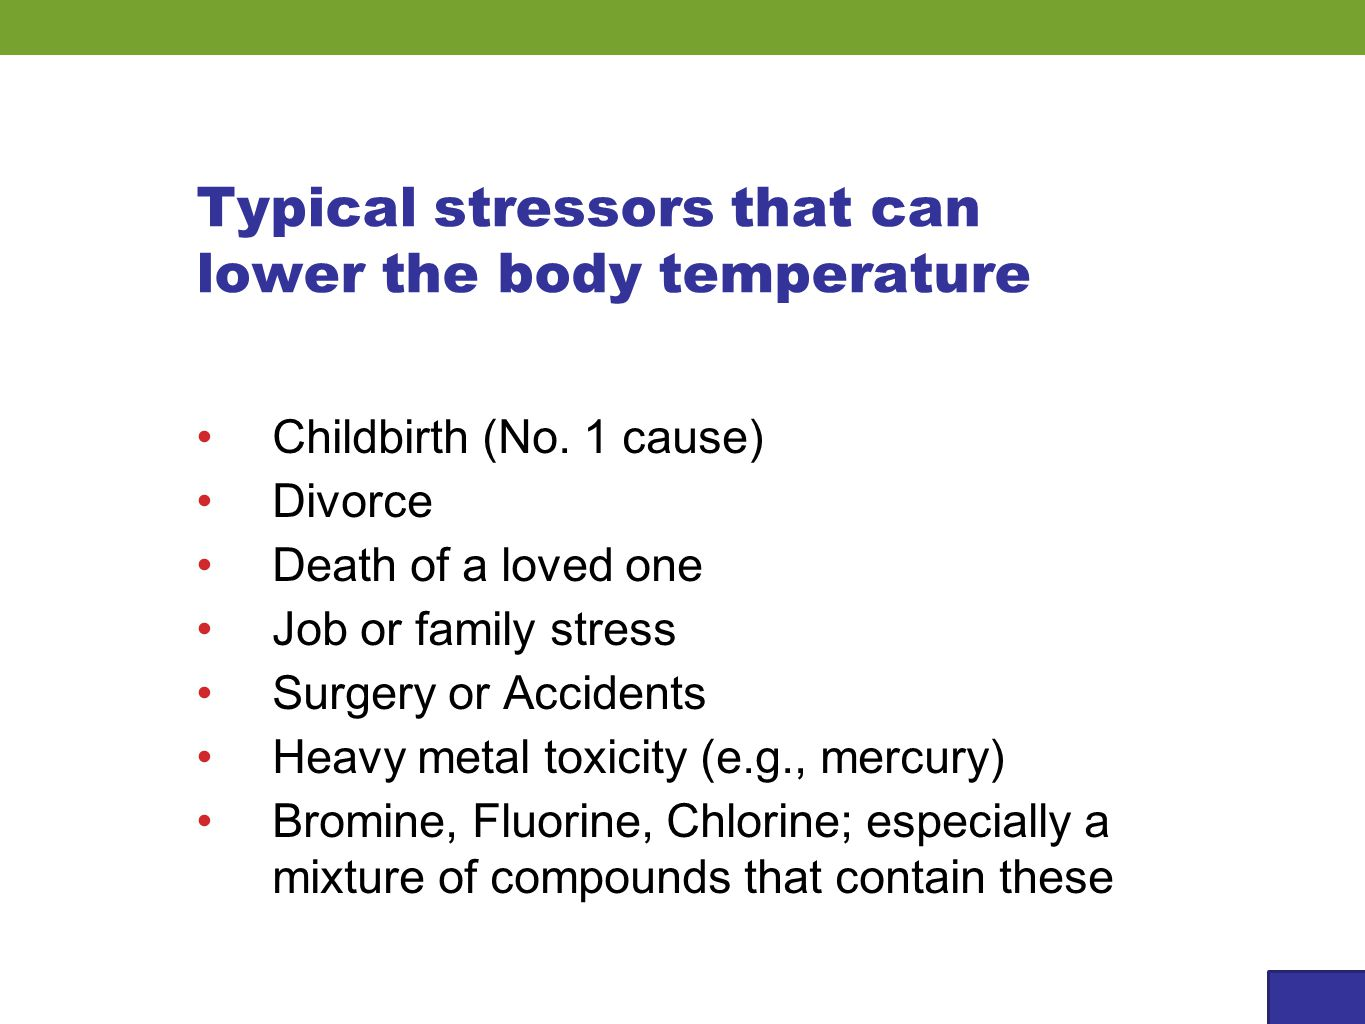 Childbirth (No. 1 cause) Divorce Death of a loved one Job or family stress Surgery or Accidents Heavy metal toxicity (e.g., mercury) Bromine, Fluorine